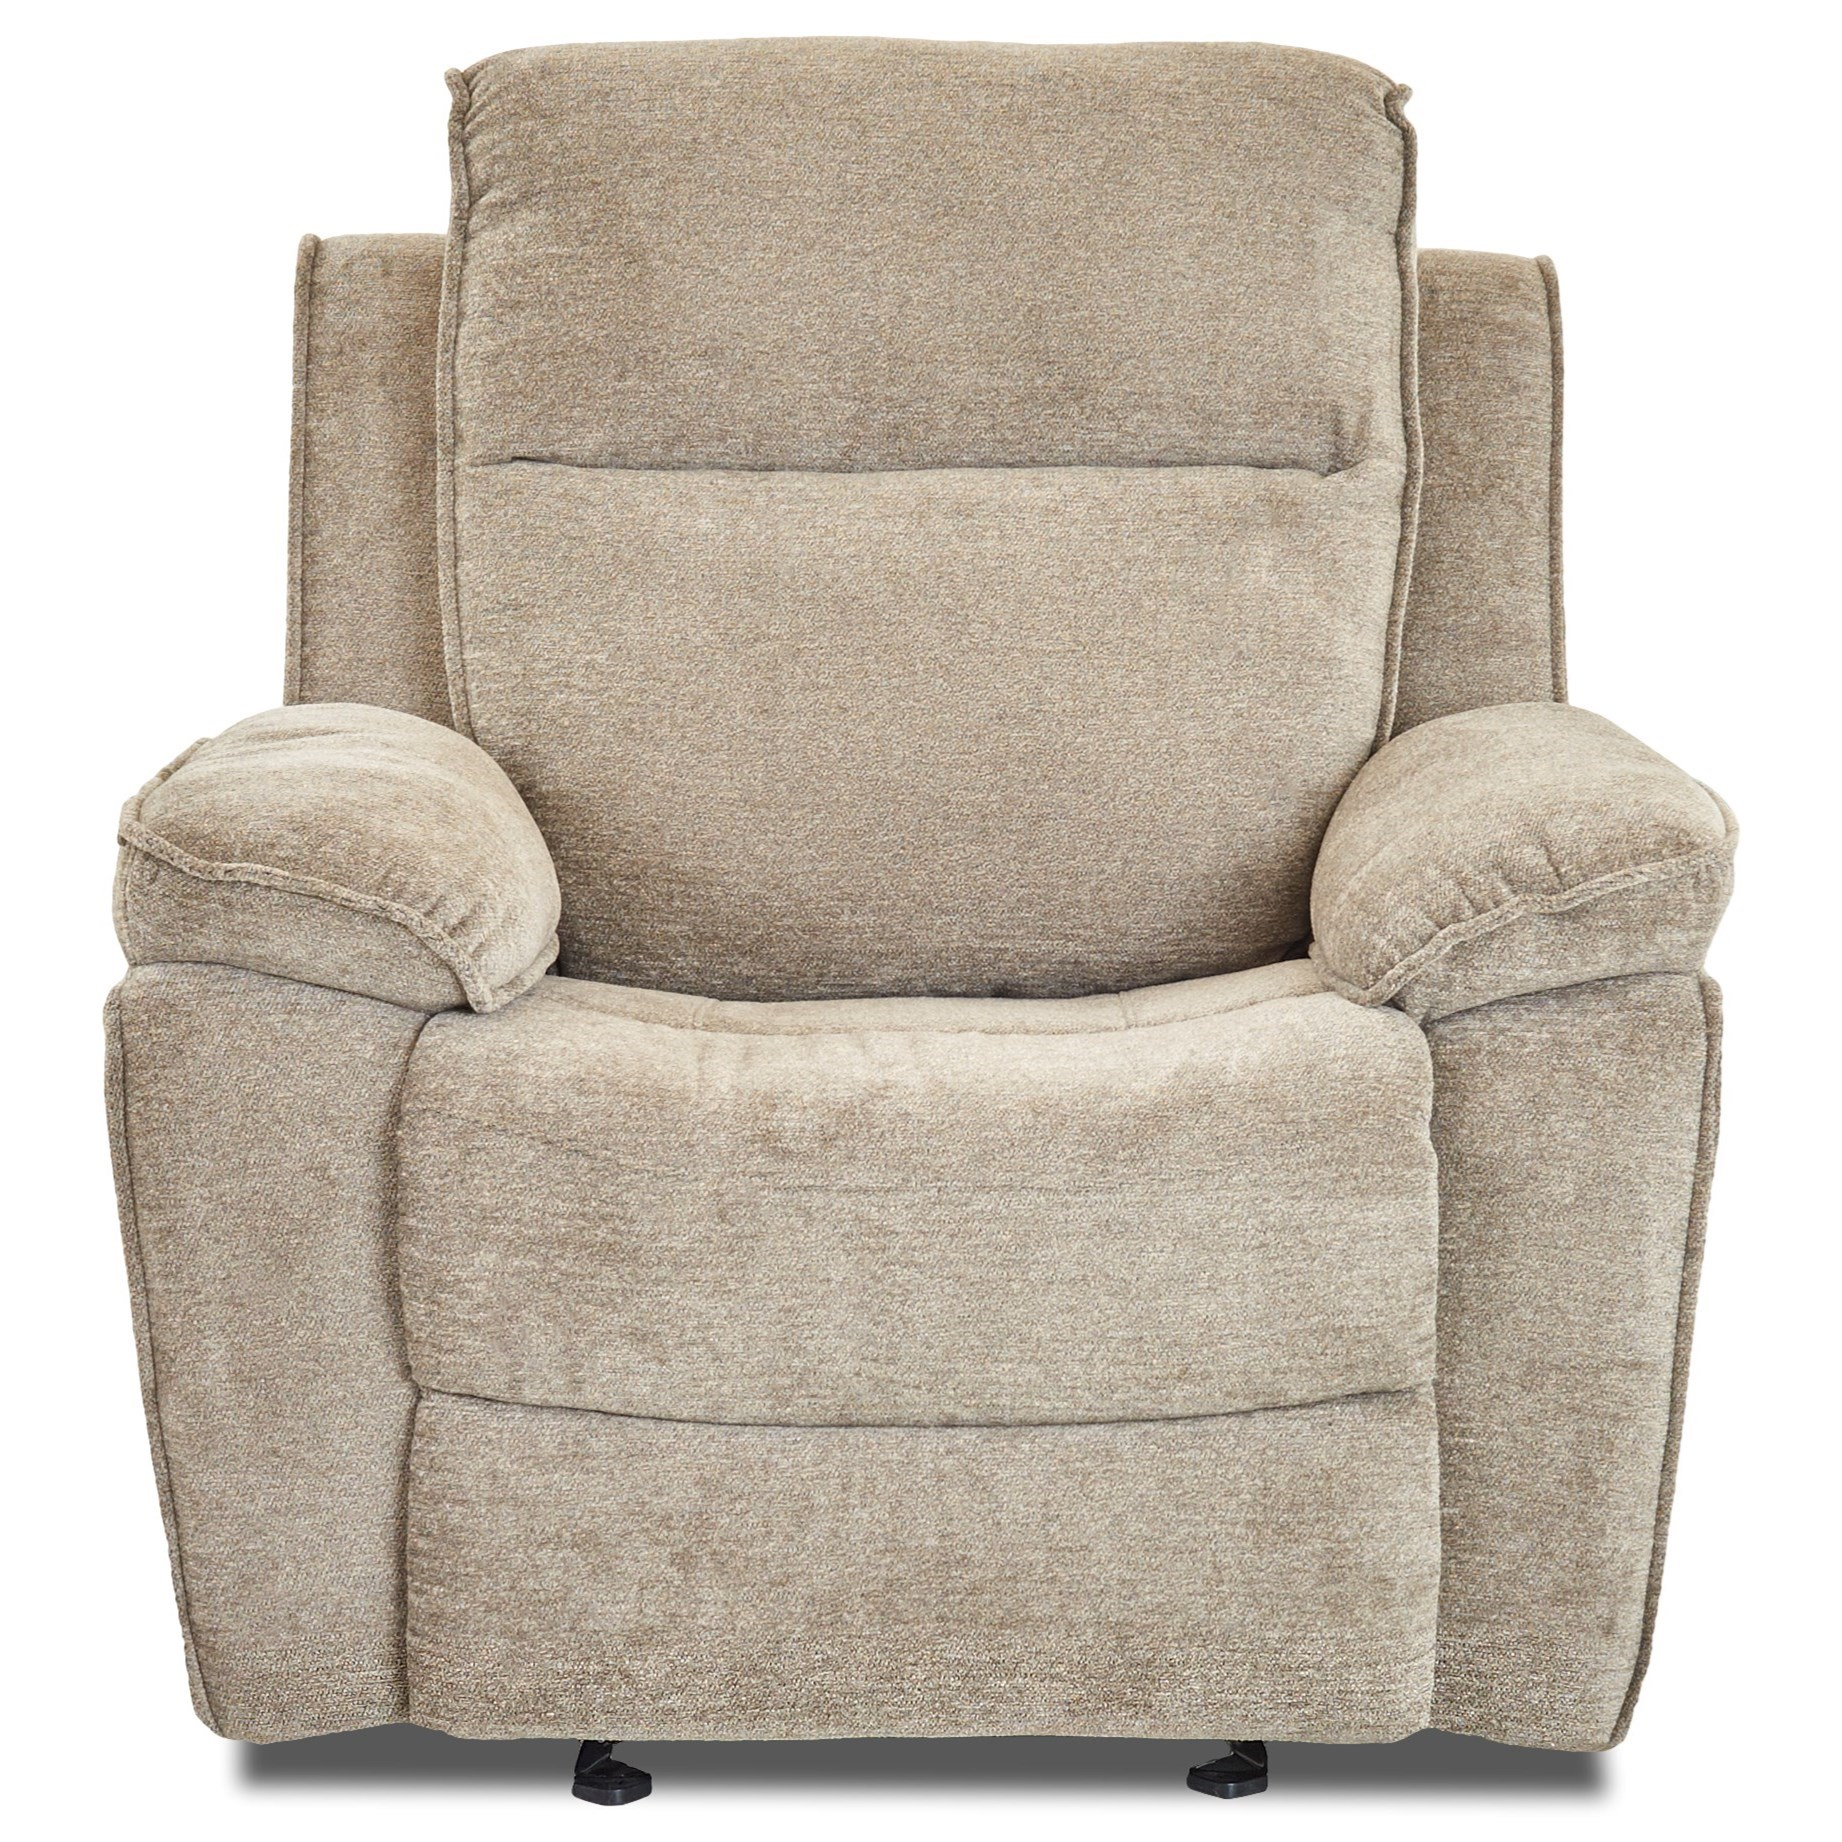 Castaway Casual Reclining Chair by Klaussner at Johnny Janosik